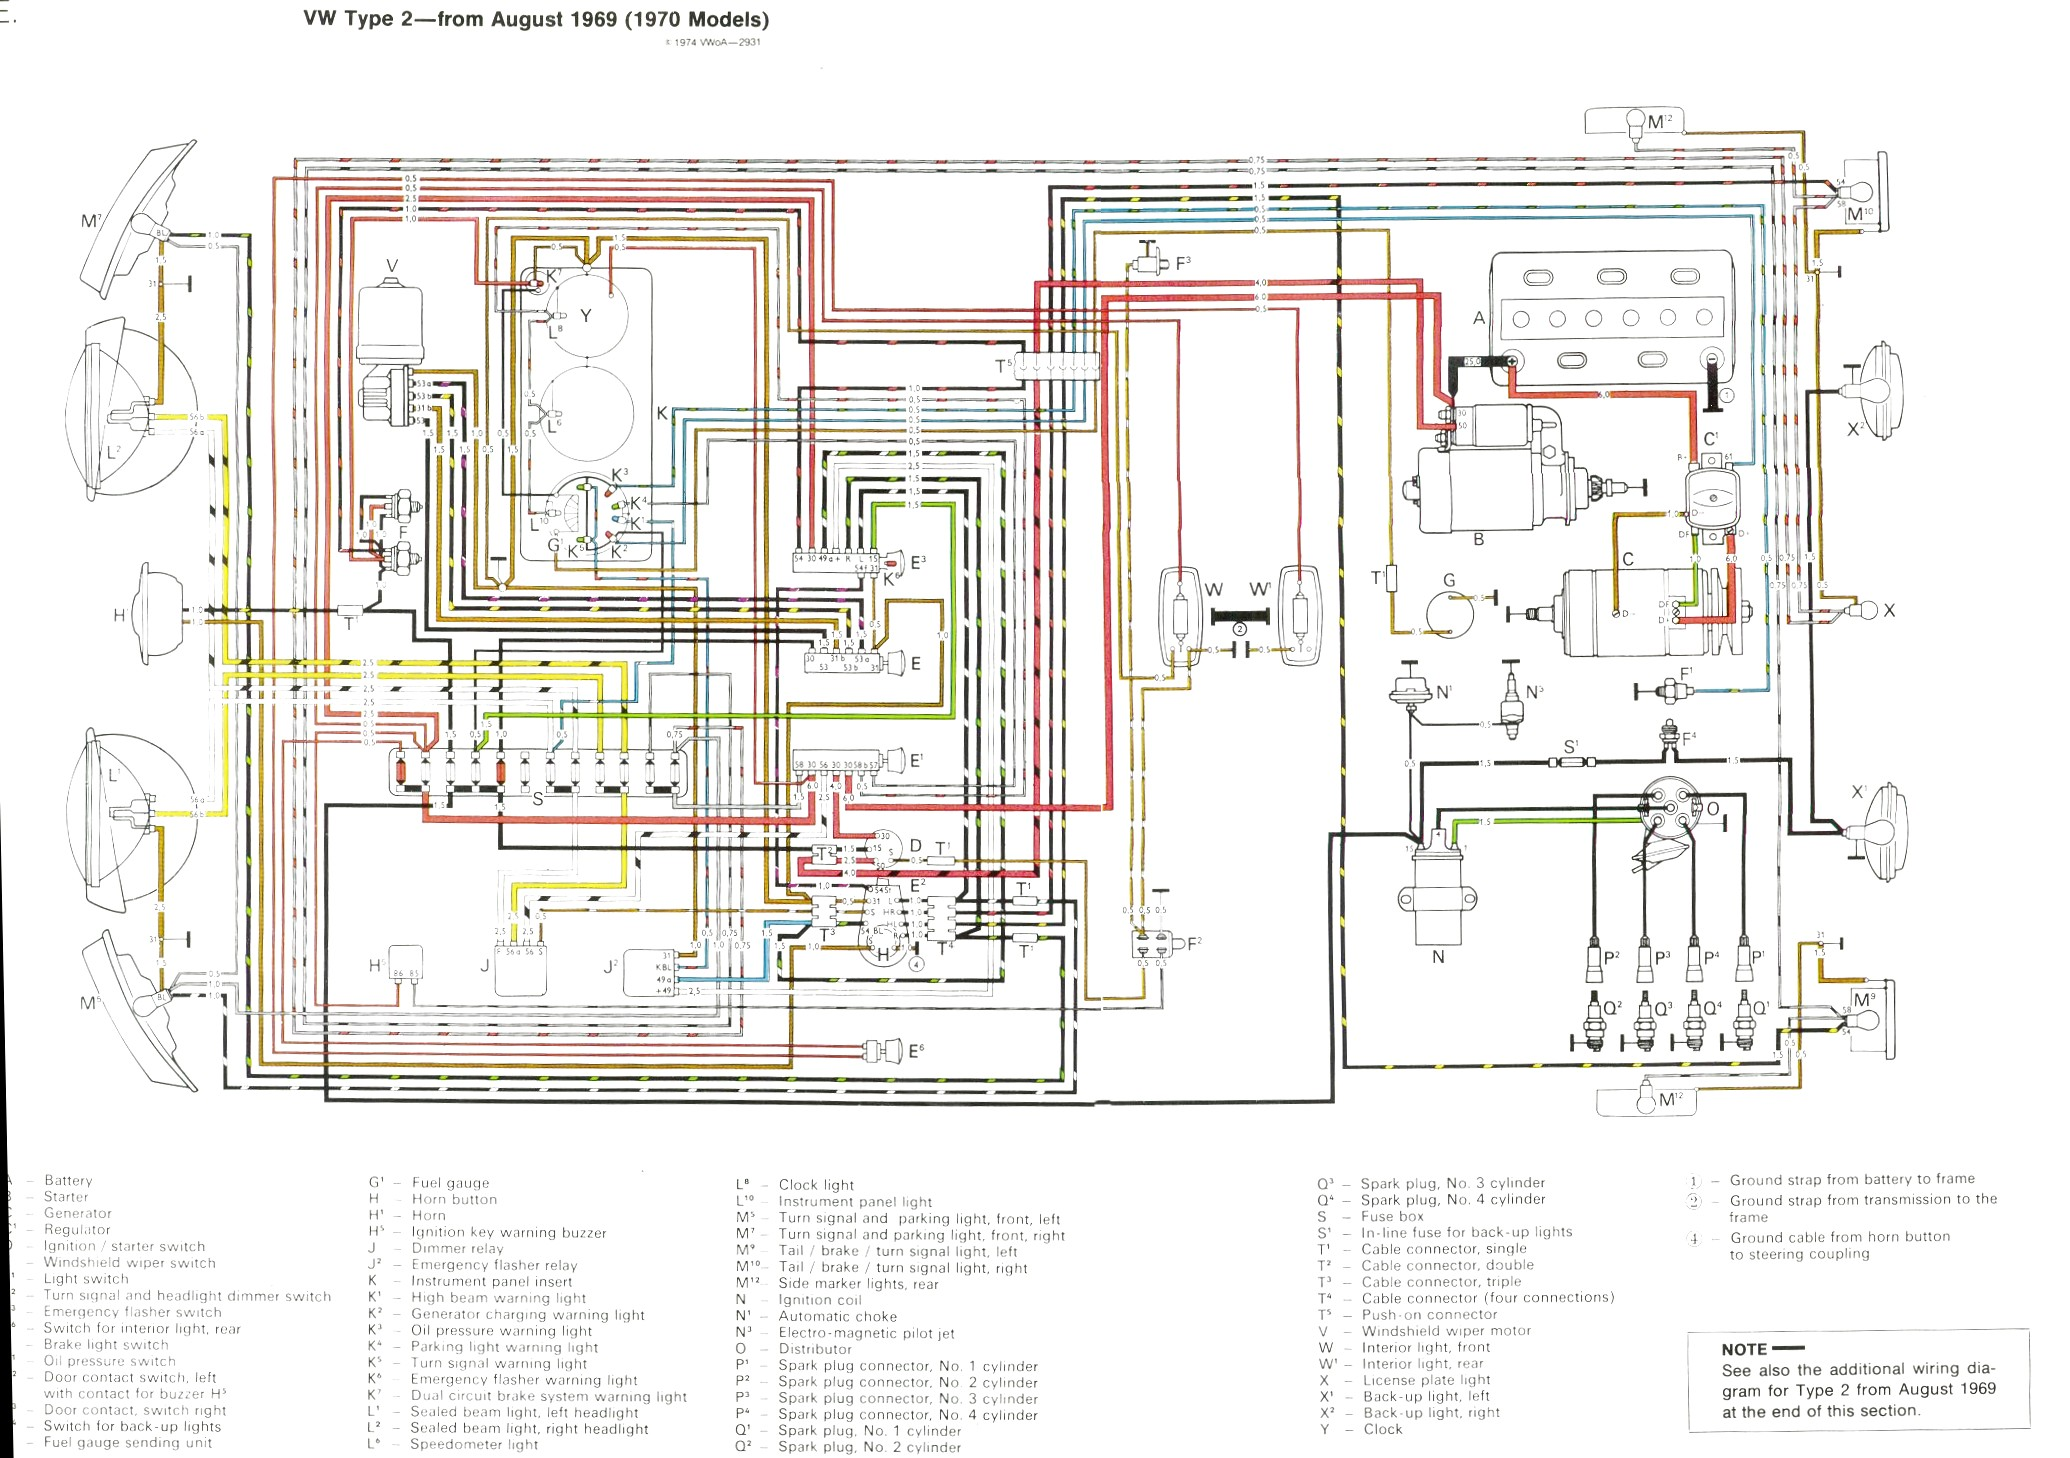 baywindow fusebox layout 1969 1970 models 411 937 505a note the fusebox in the schematic